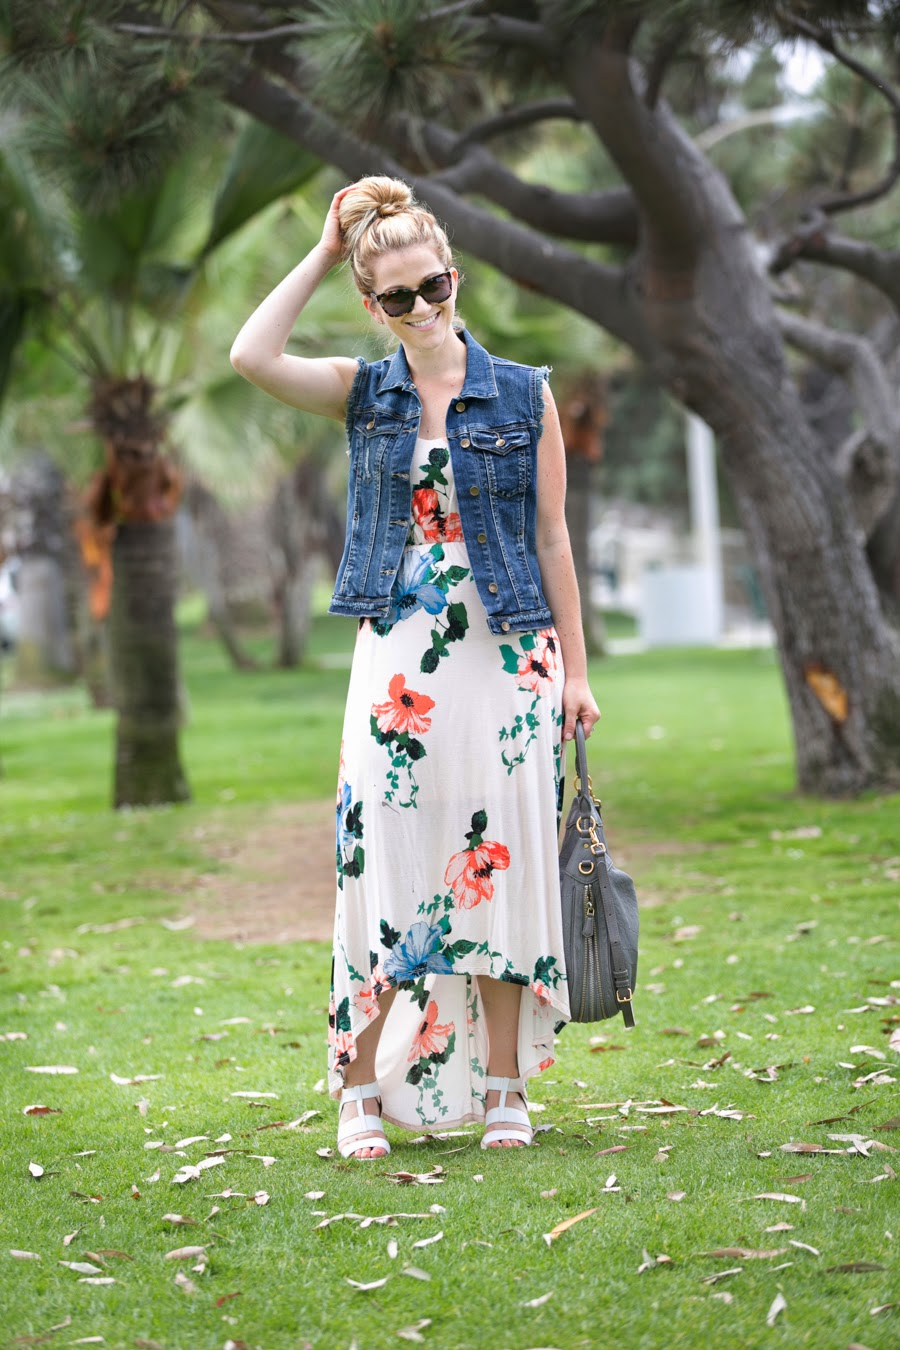 Vested in Denim + Floral Hi-Low Maxi via @lucismorsels